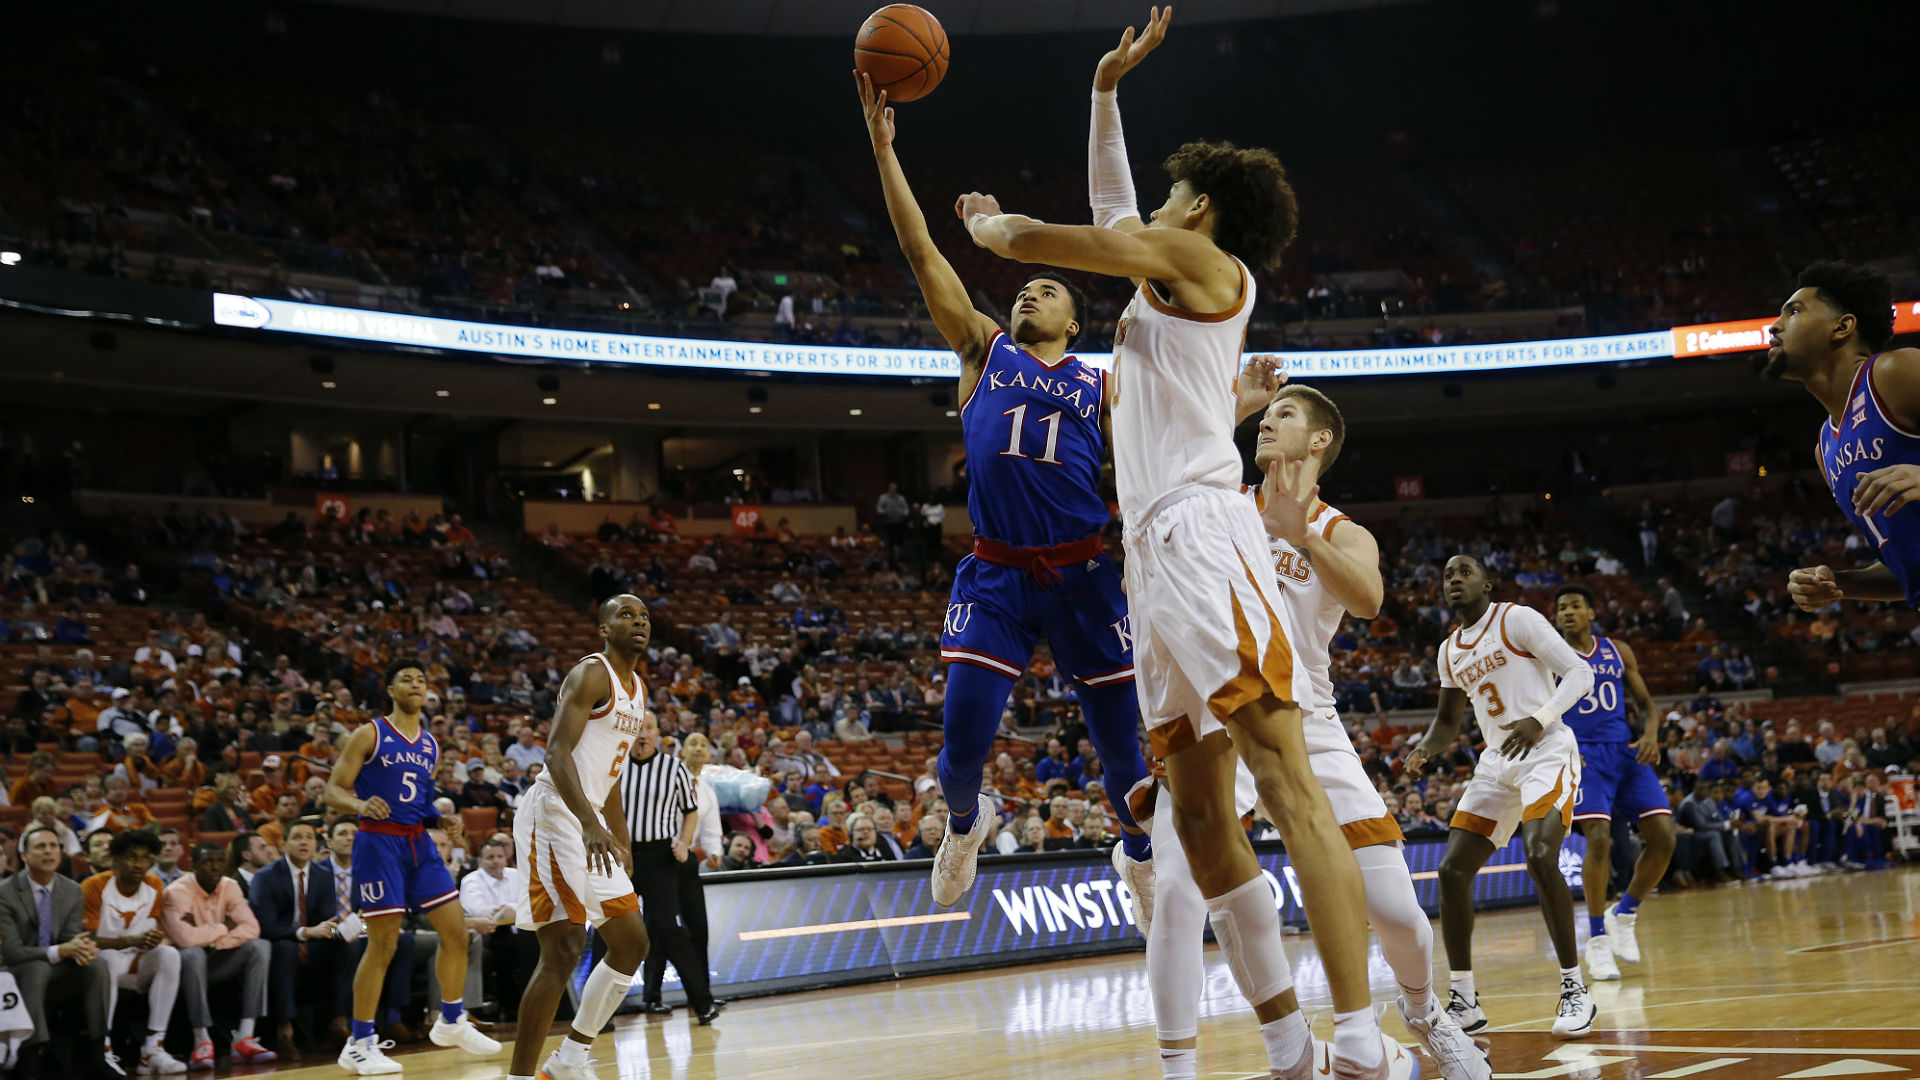 Texas shuts down No. 11 Kansas